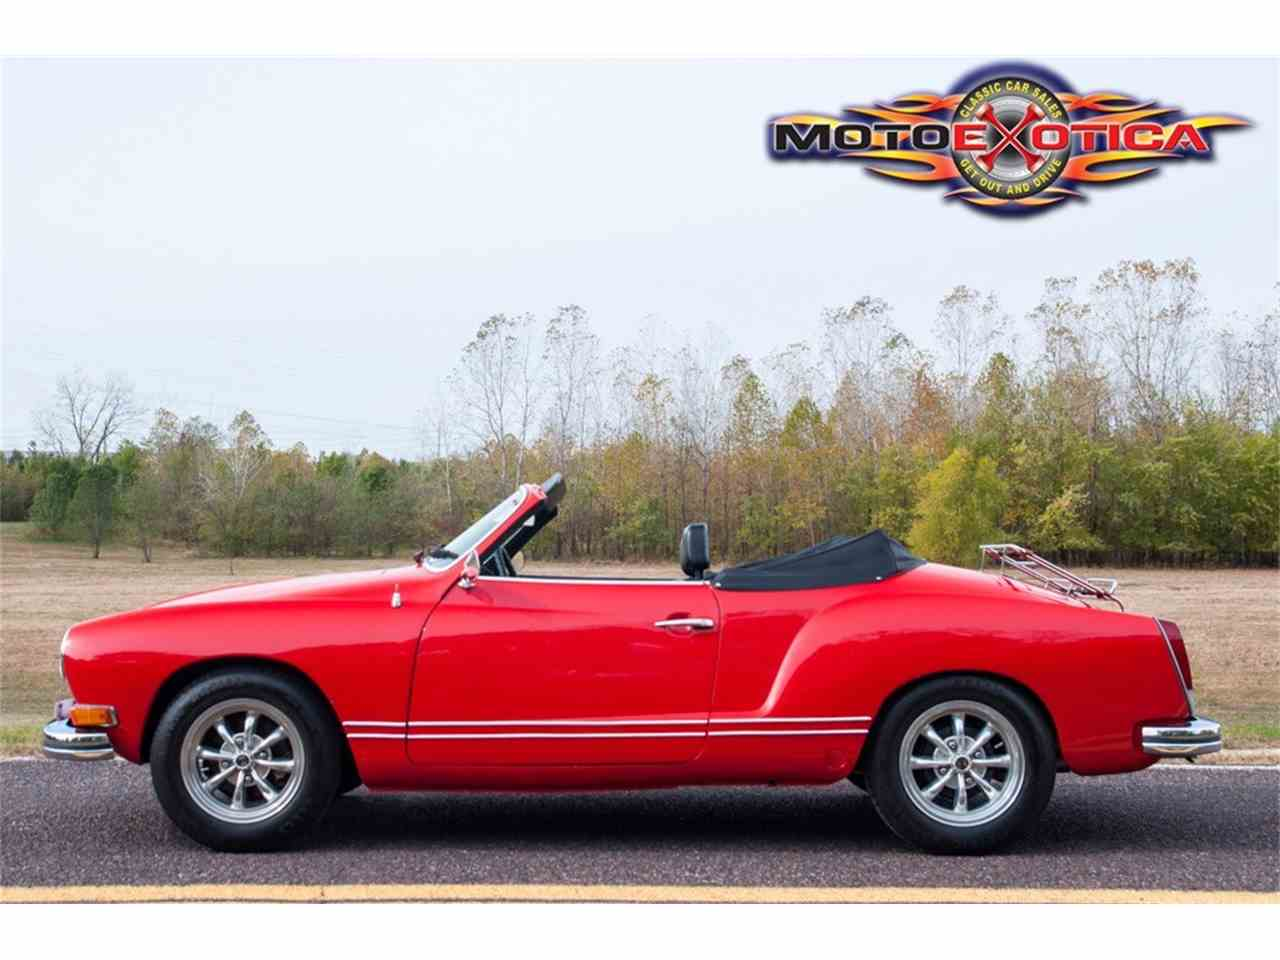 Large Picture of Classic 1972 Karmann Ghia - $21,900.00 Offered by MotoeXotica Classic Cars - MB4C